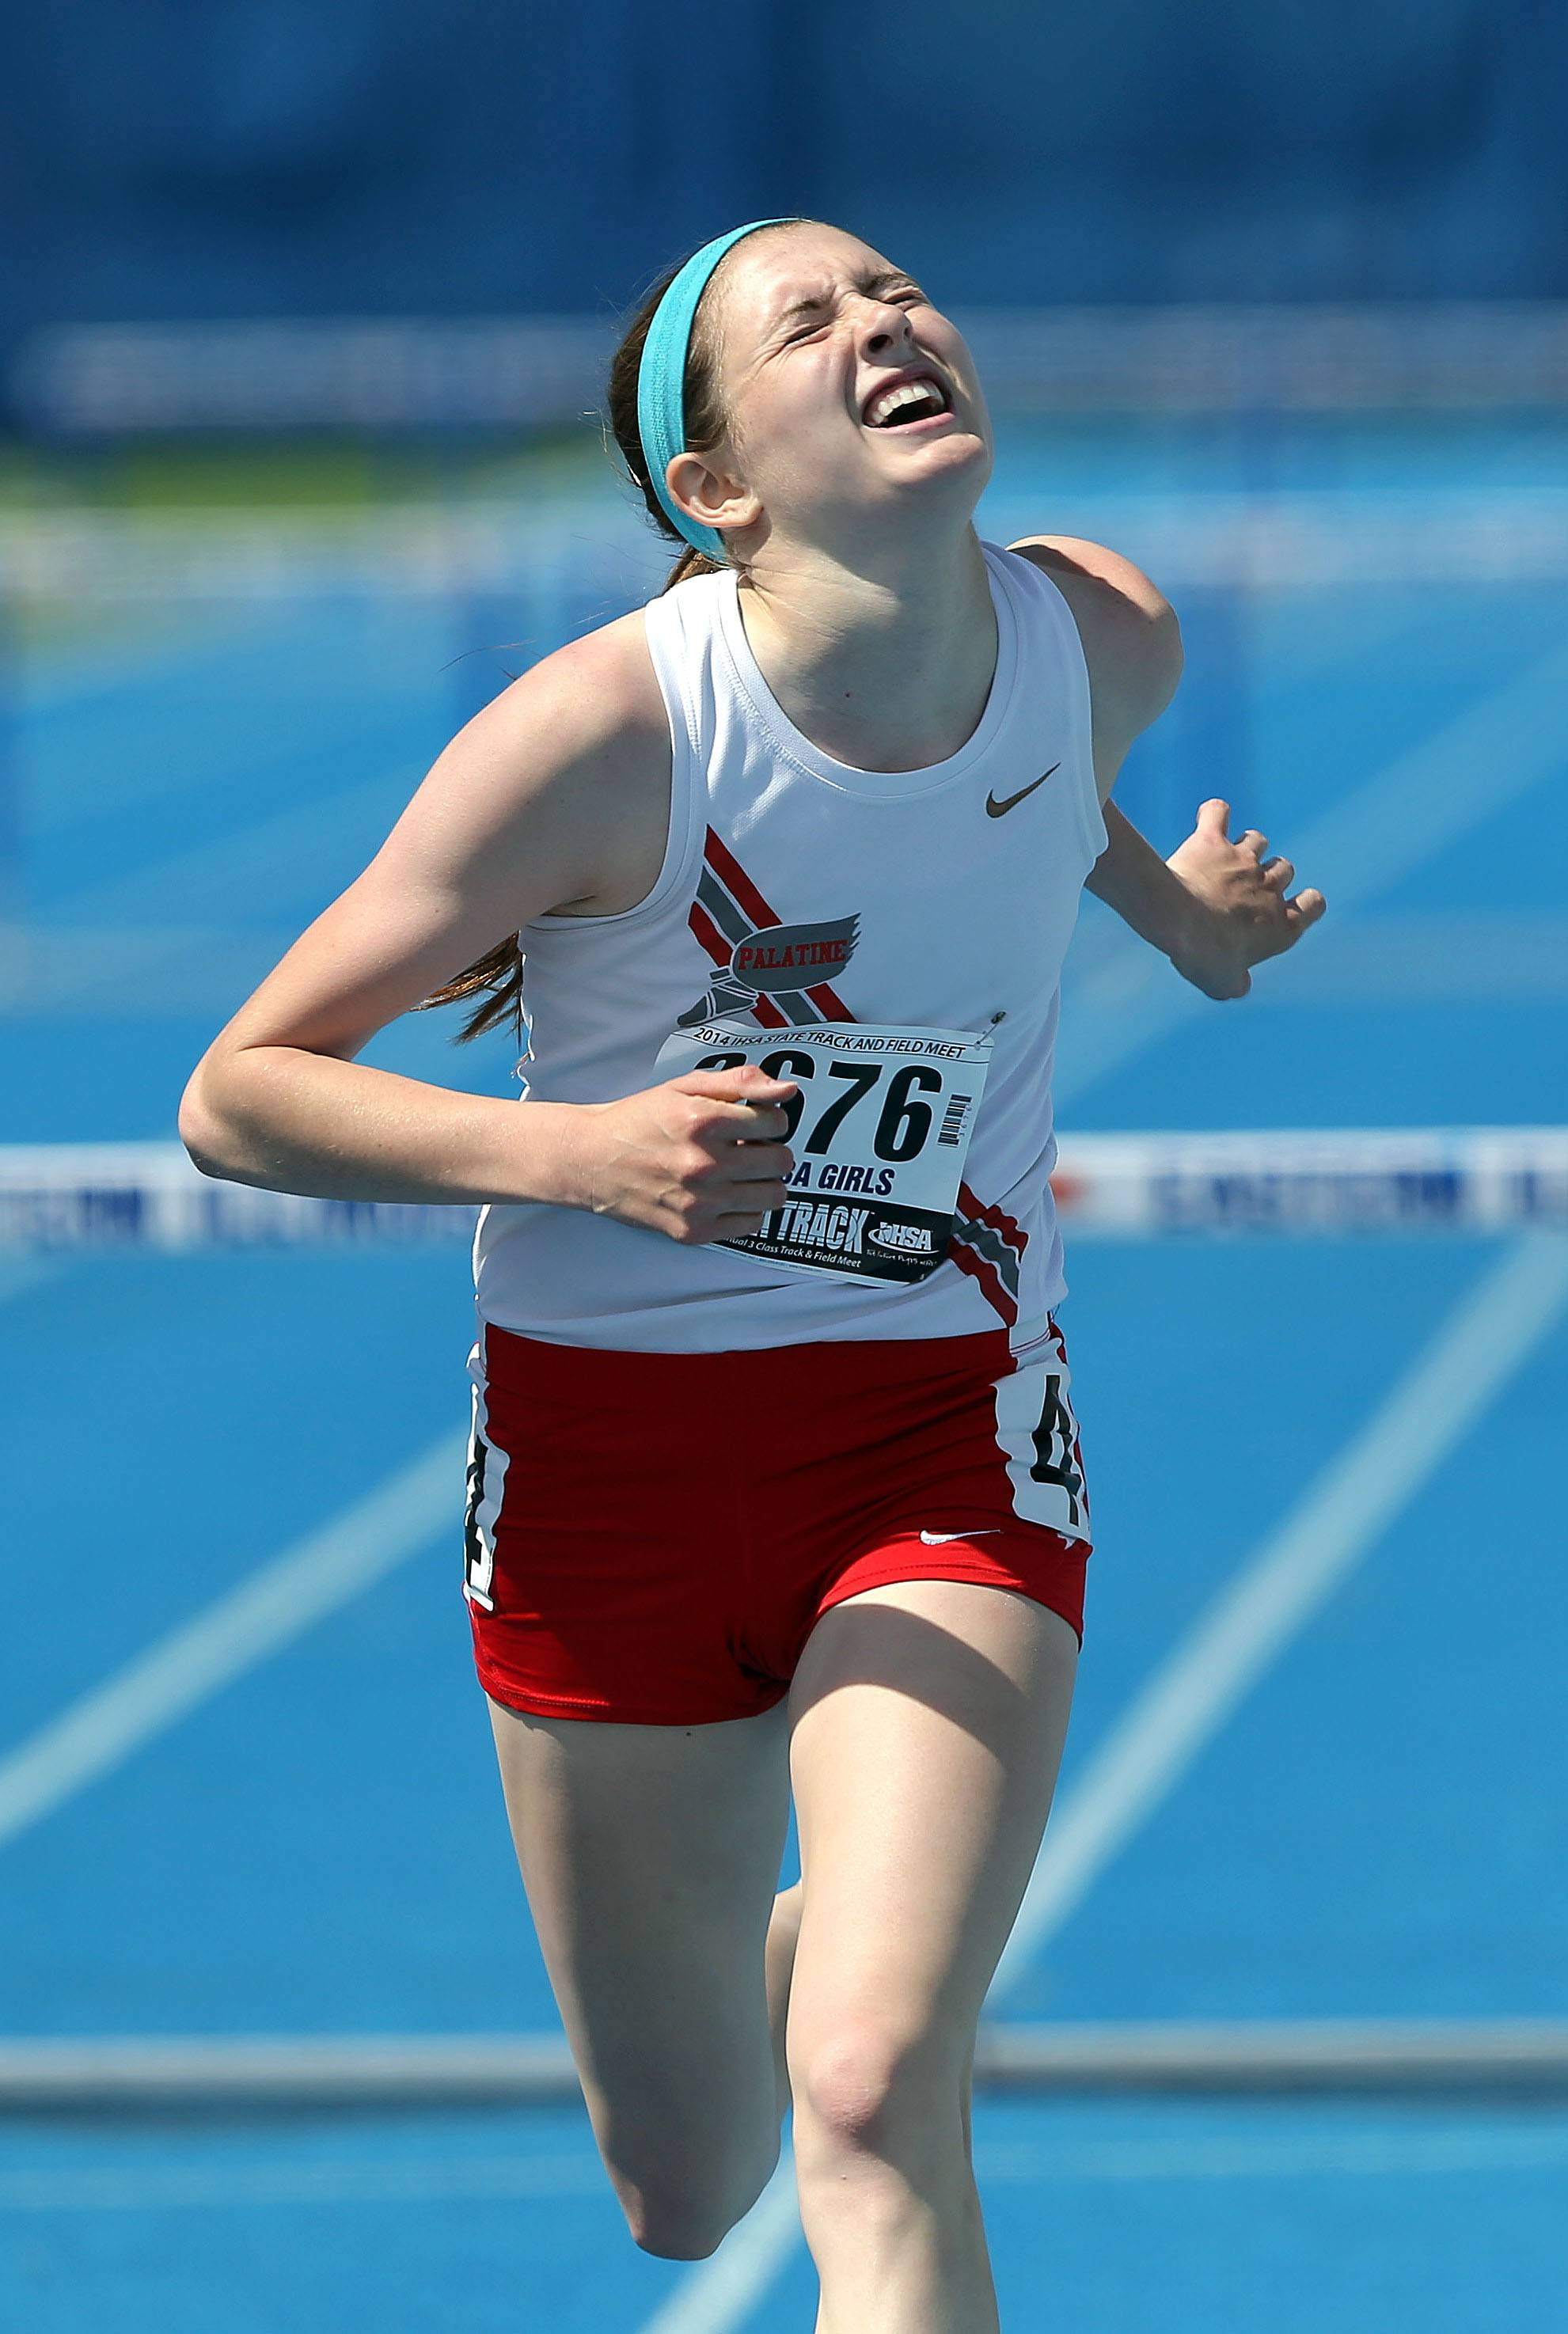 Steve Lundy/slundy@dailyherald.comPalatine's Caitlin Riedy pushes to the finish in the 300-meter low hurdles during the Class 3A prelims of the girls track and field state meet at Eastern Illinois University in Charleston on Friday.